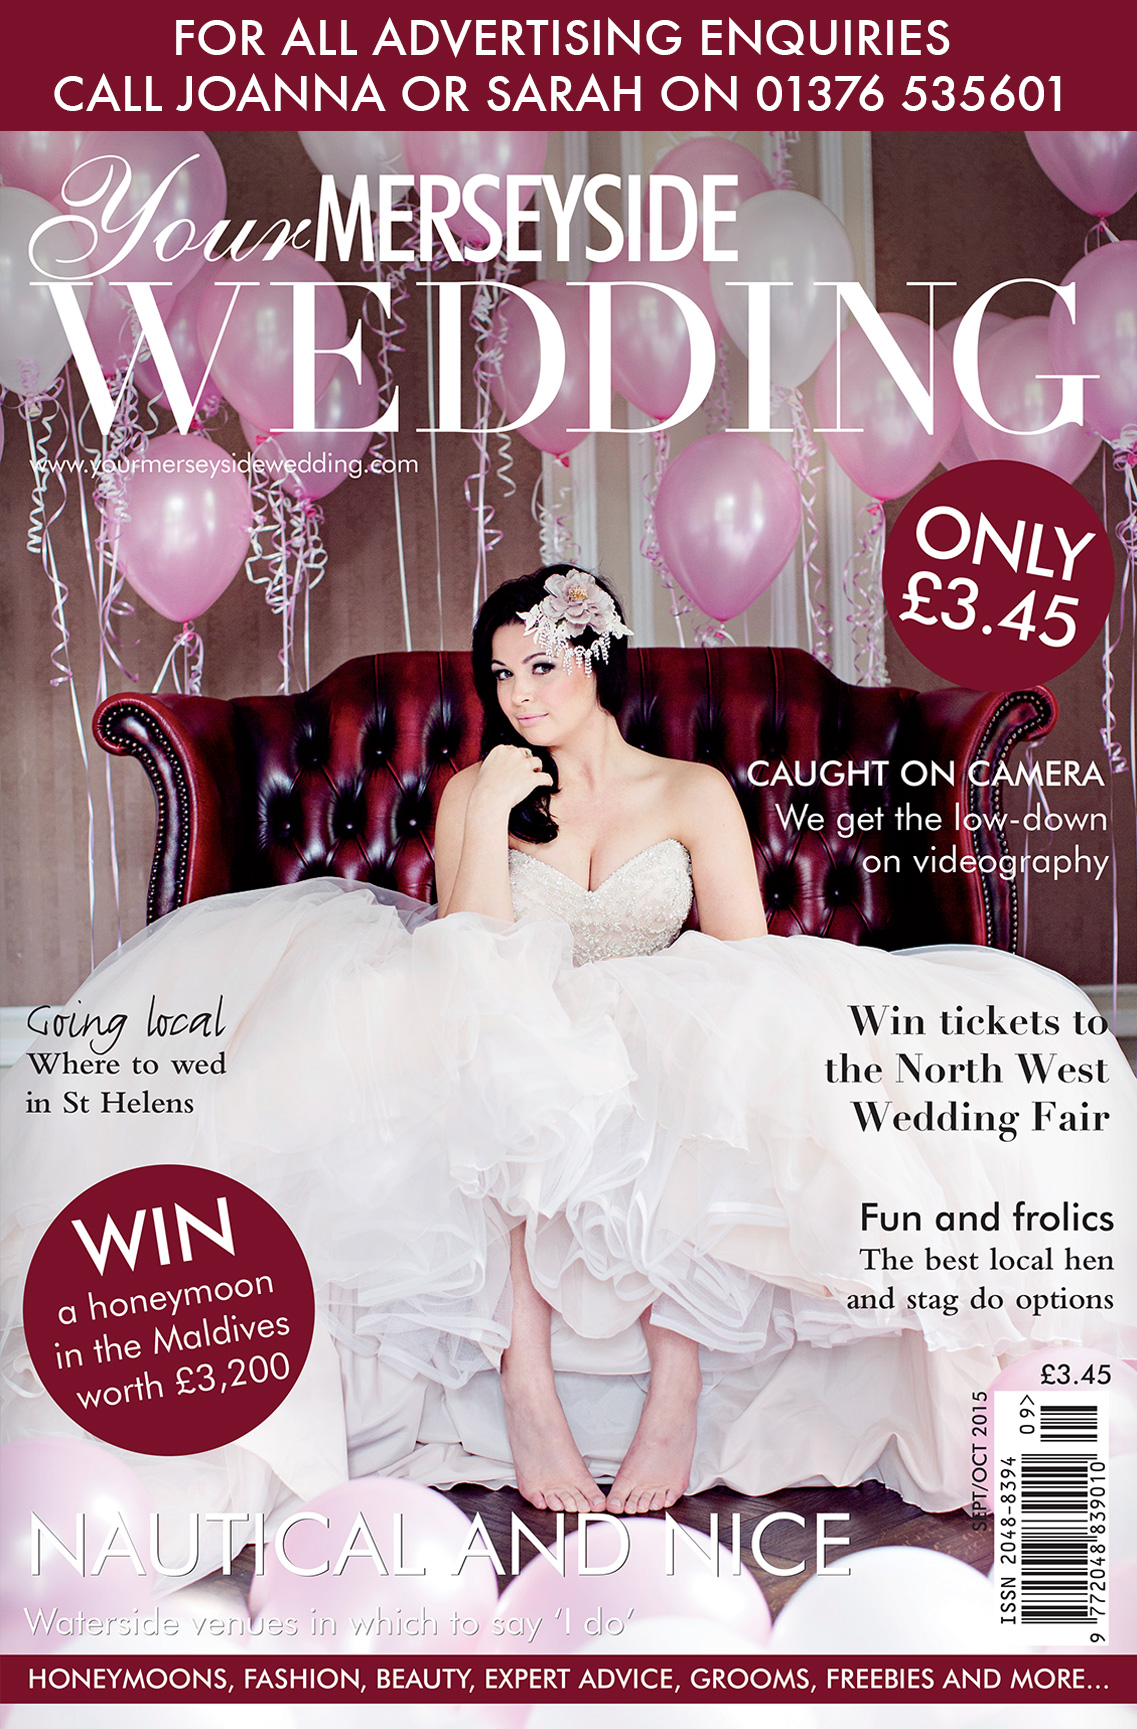 Leasowe Castle Wedding Fayre, Wirral. Sunday 22nd June Your Merseyside Wedding MagazinesRED EVENT-112